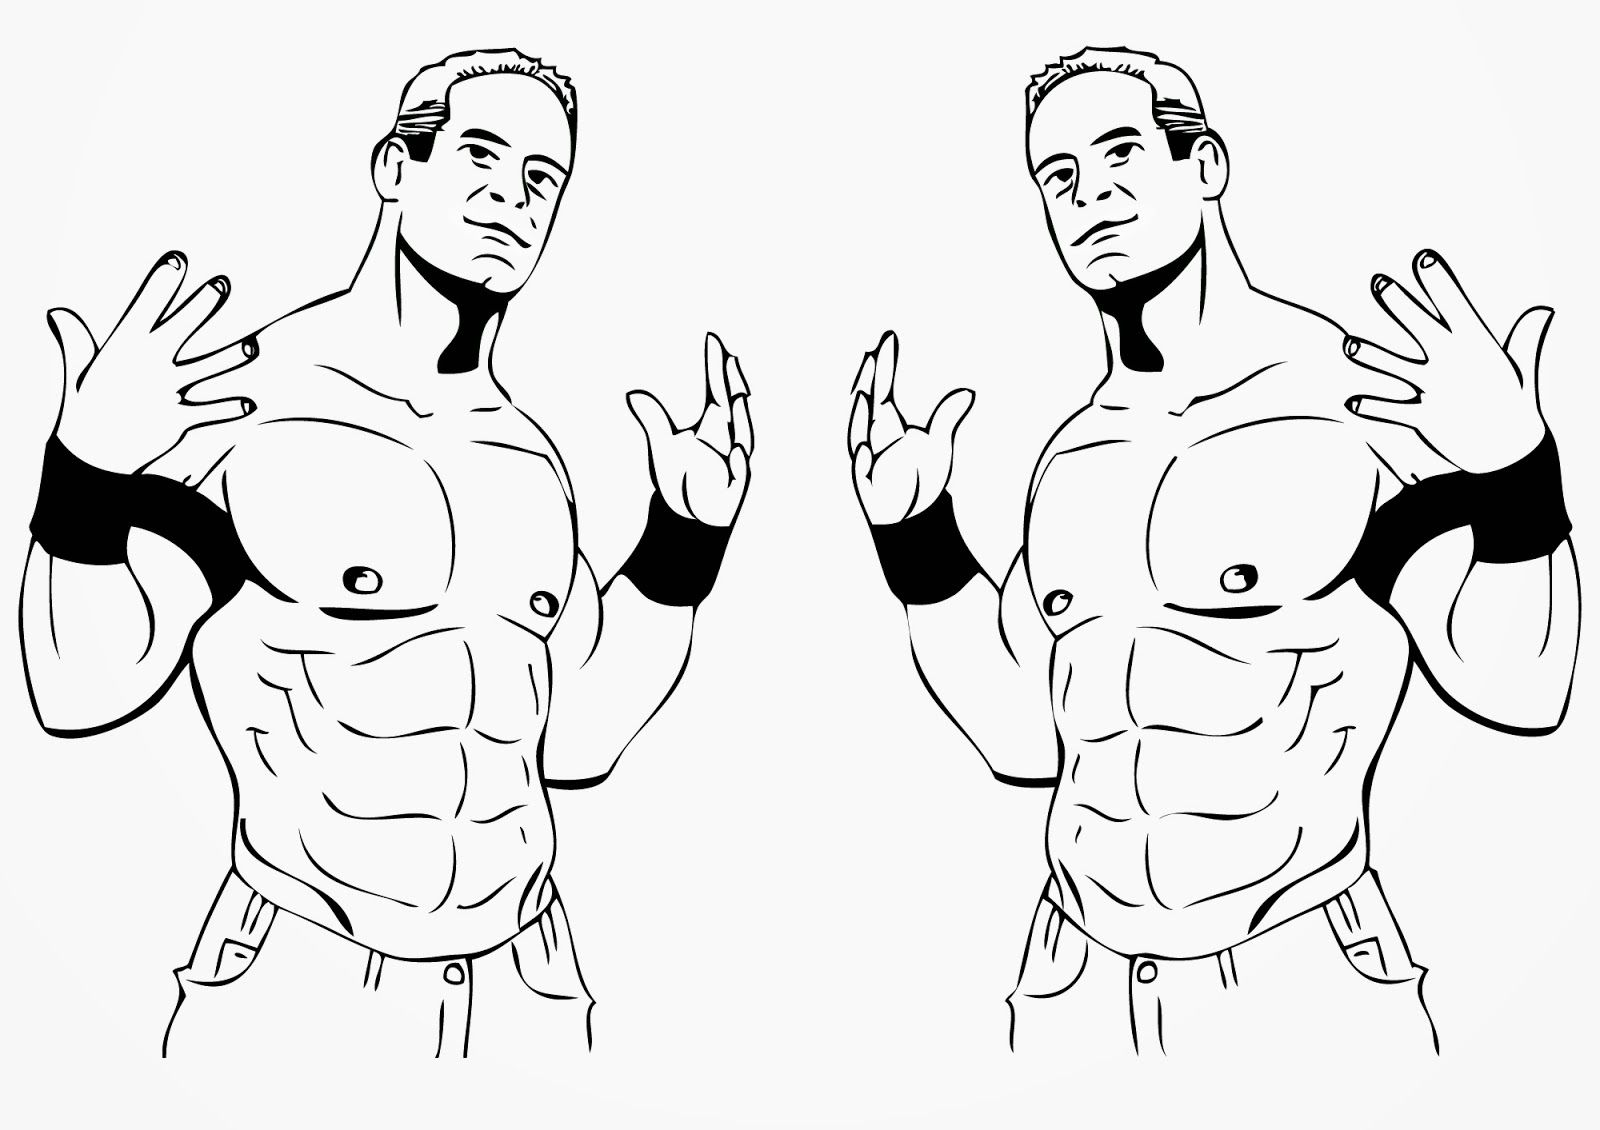 Handy John Cena Coloring Page Free Printable Coloring Pages ...